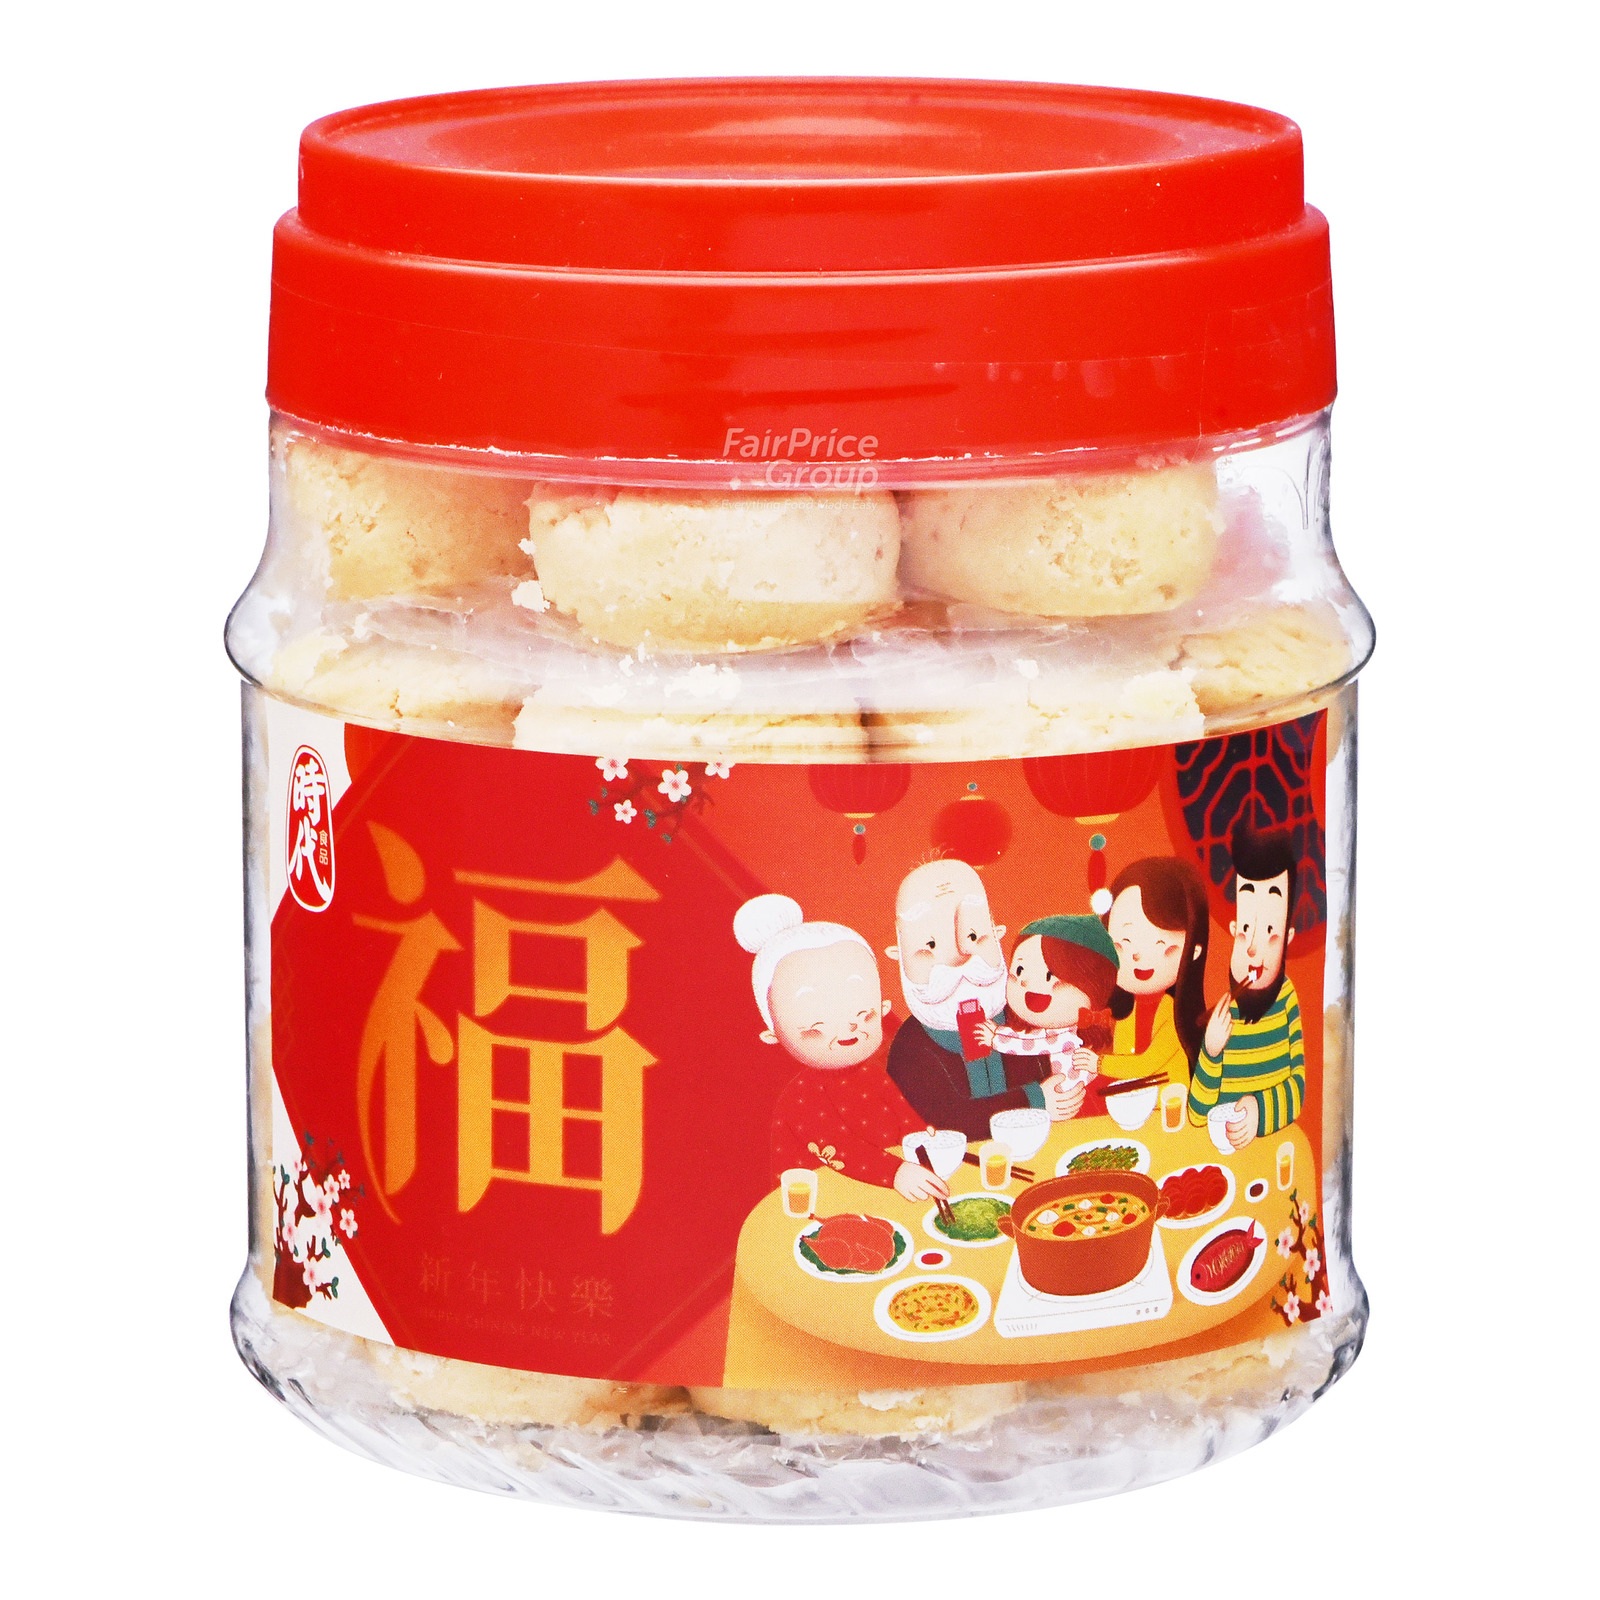 Style Food CNY Cookies - Melting Almond